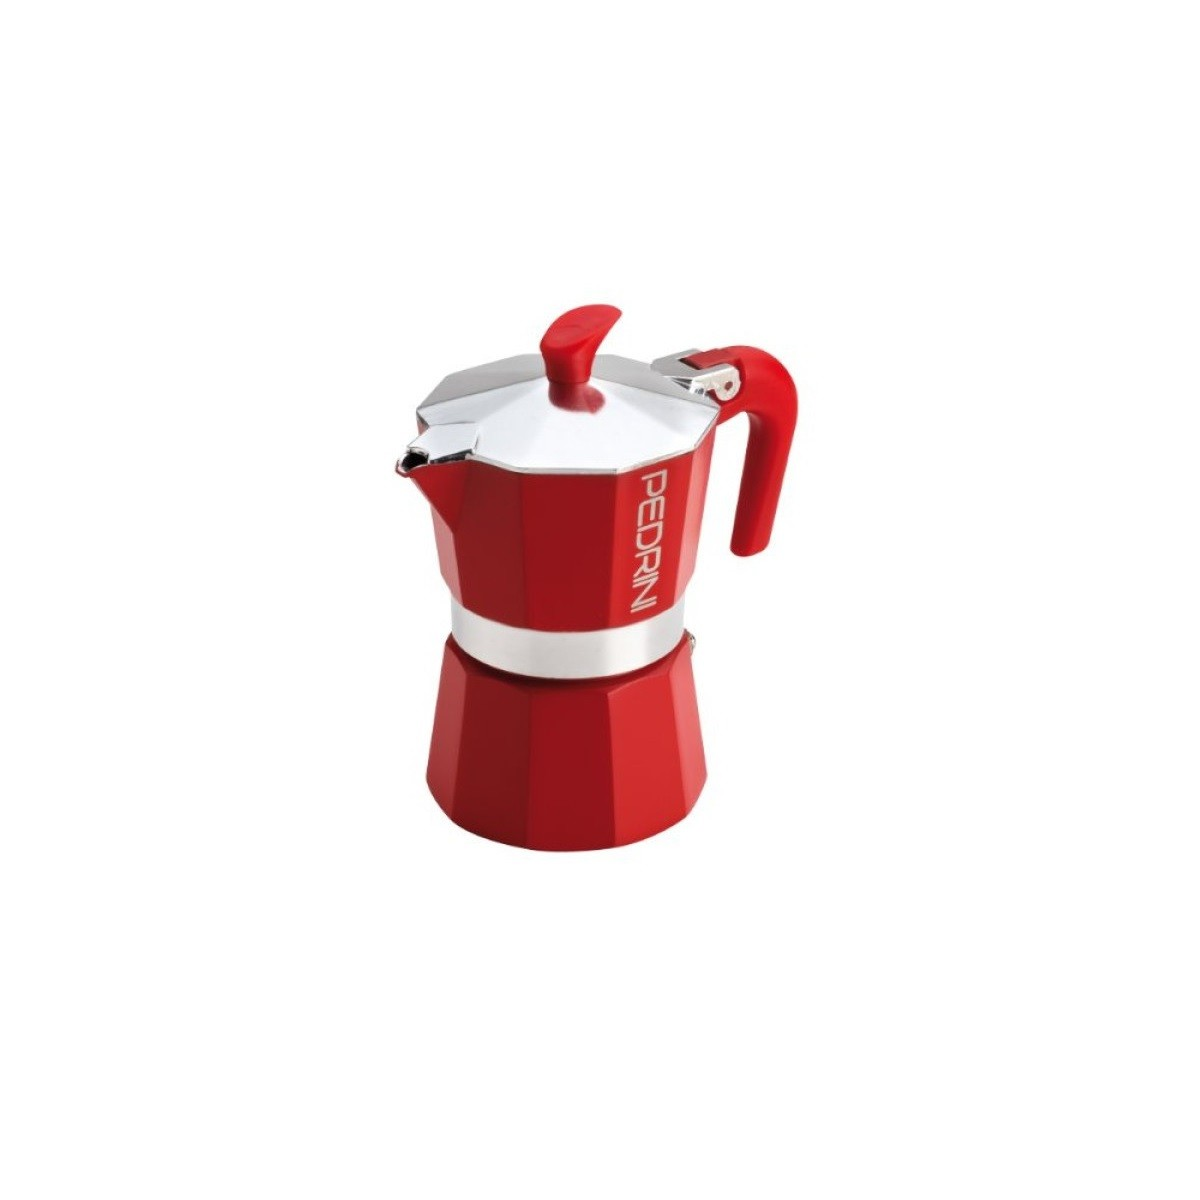 Pedrini coffee maker Kaffettiera 1 Moka mug in aluminum & Ergonomic red